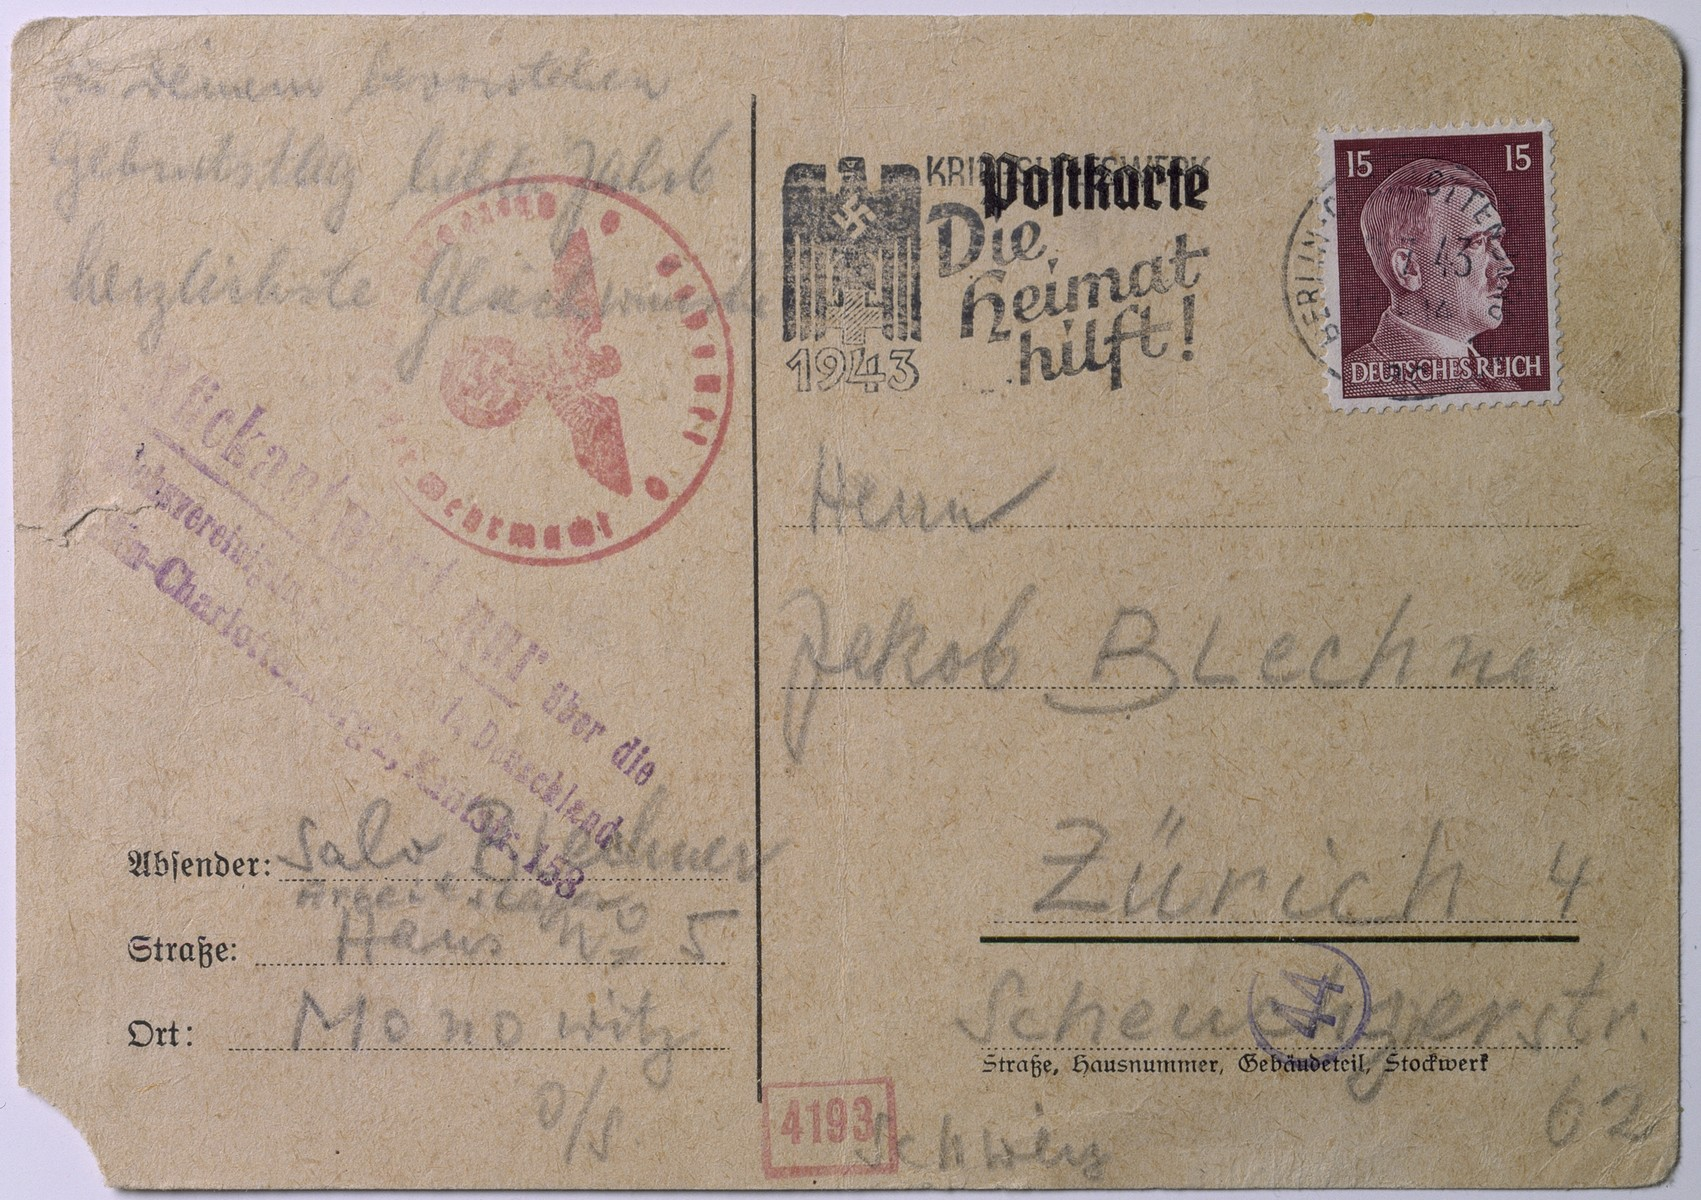 Postcard written by Salo Blechner in the Auschwitz-Monowitz concentration camp to his brother Jakob in Zurich, thanking him for sending parcels.